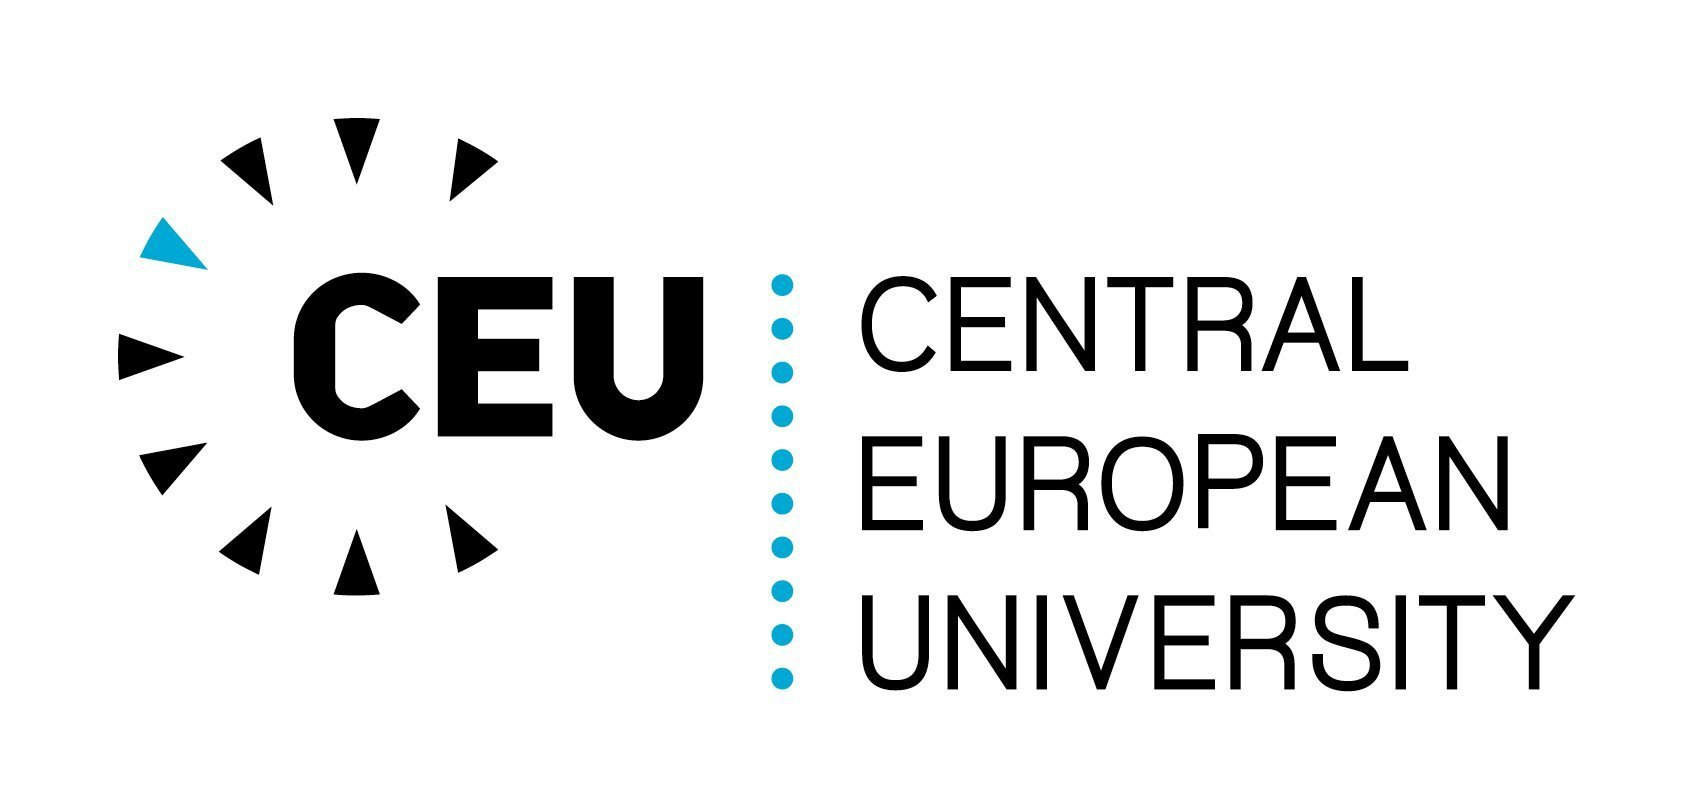 The decision is made – new CEU campus being opened in Vienna